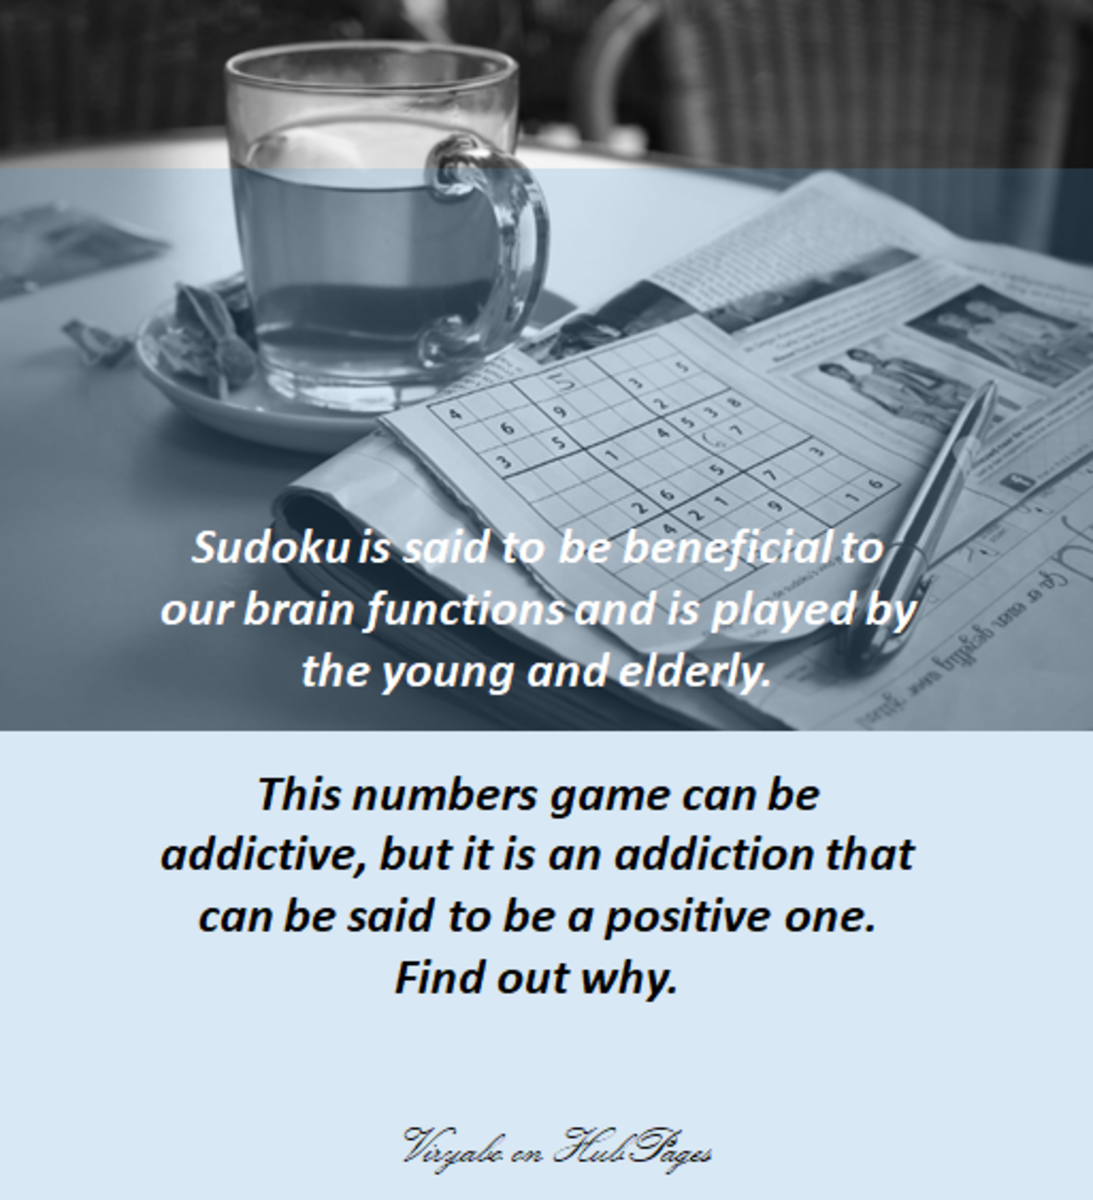 Sudoku is one of the most popular puzzle games that is strictly a logic-based combinatorial puzzle.